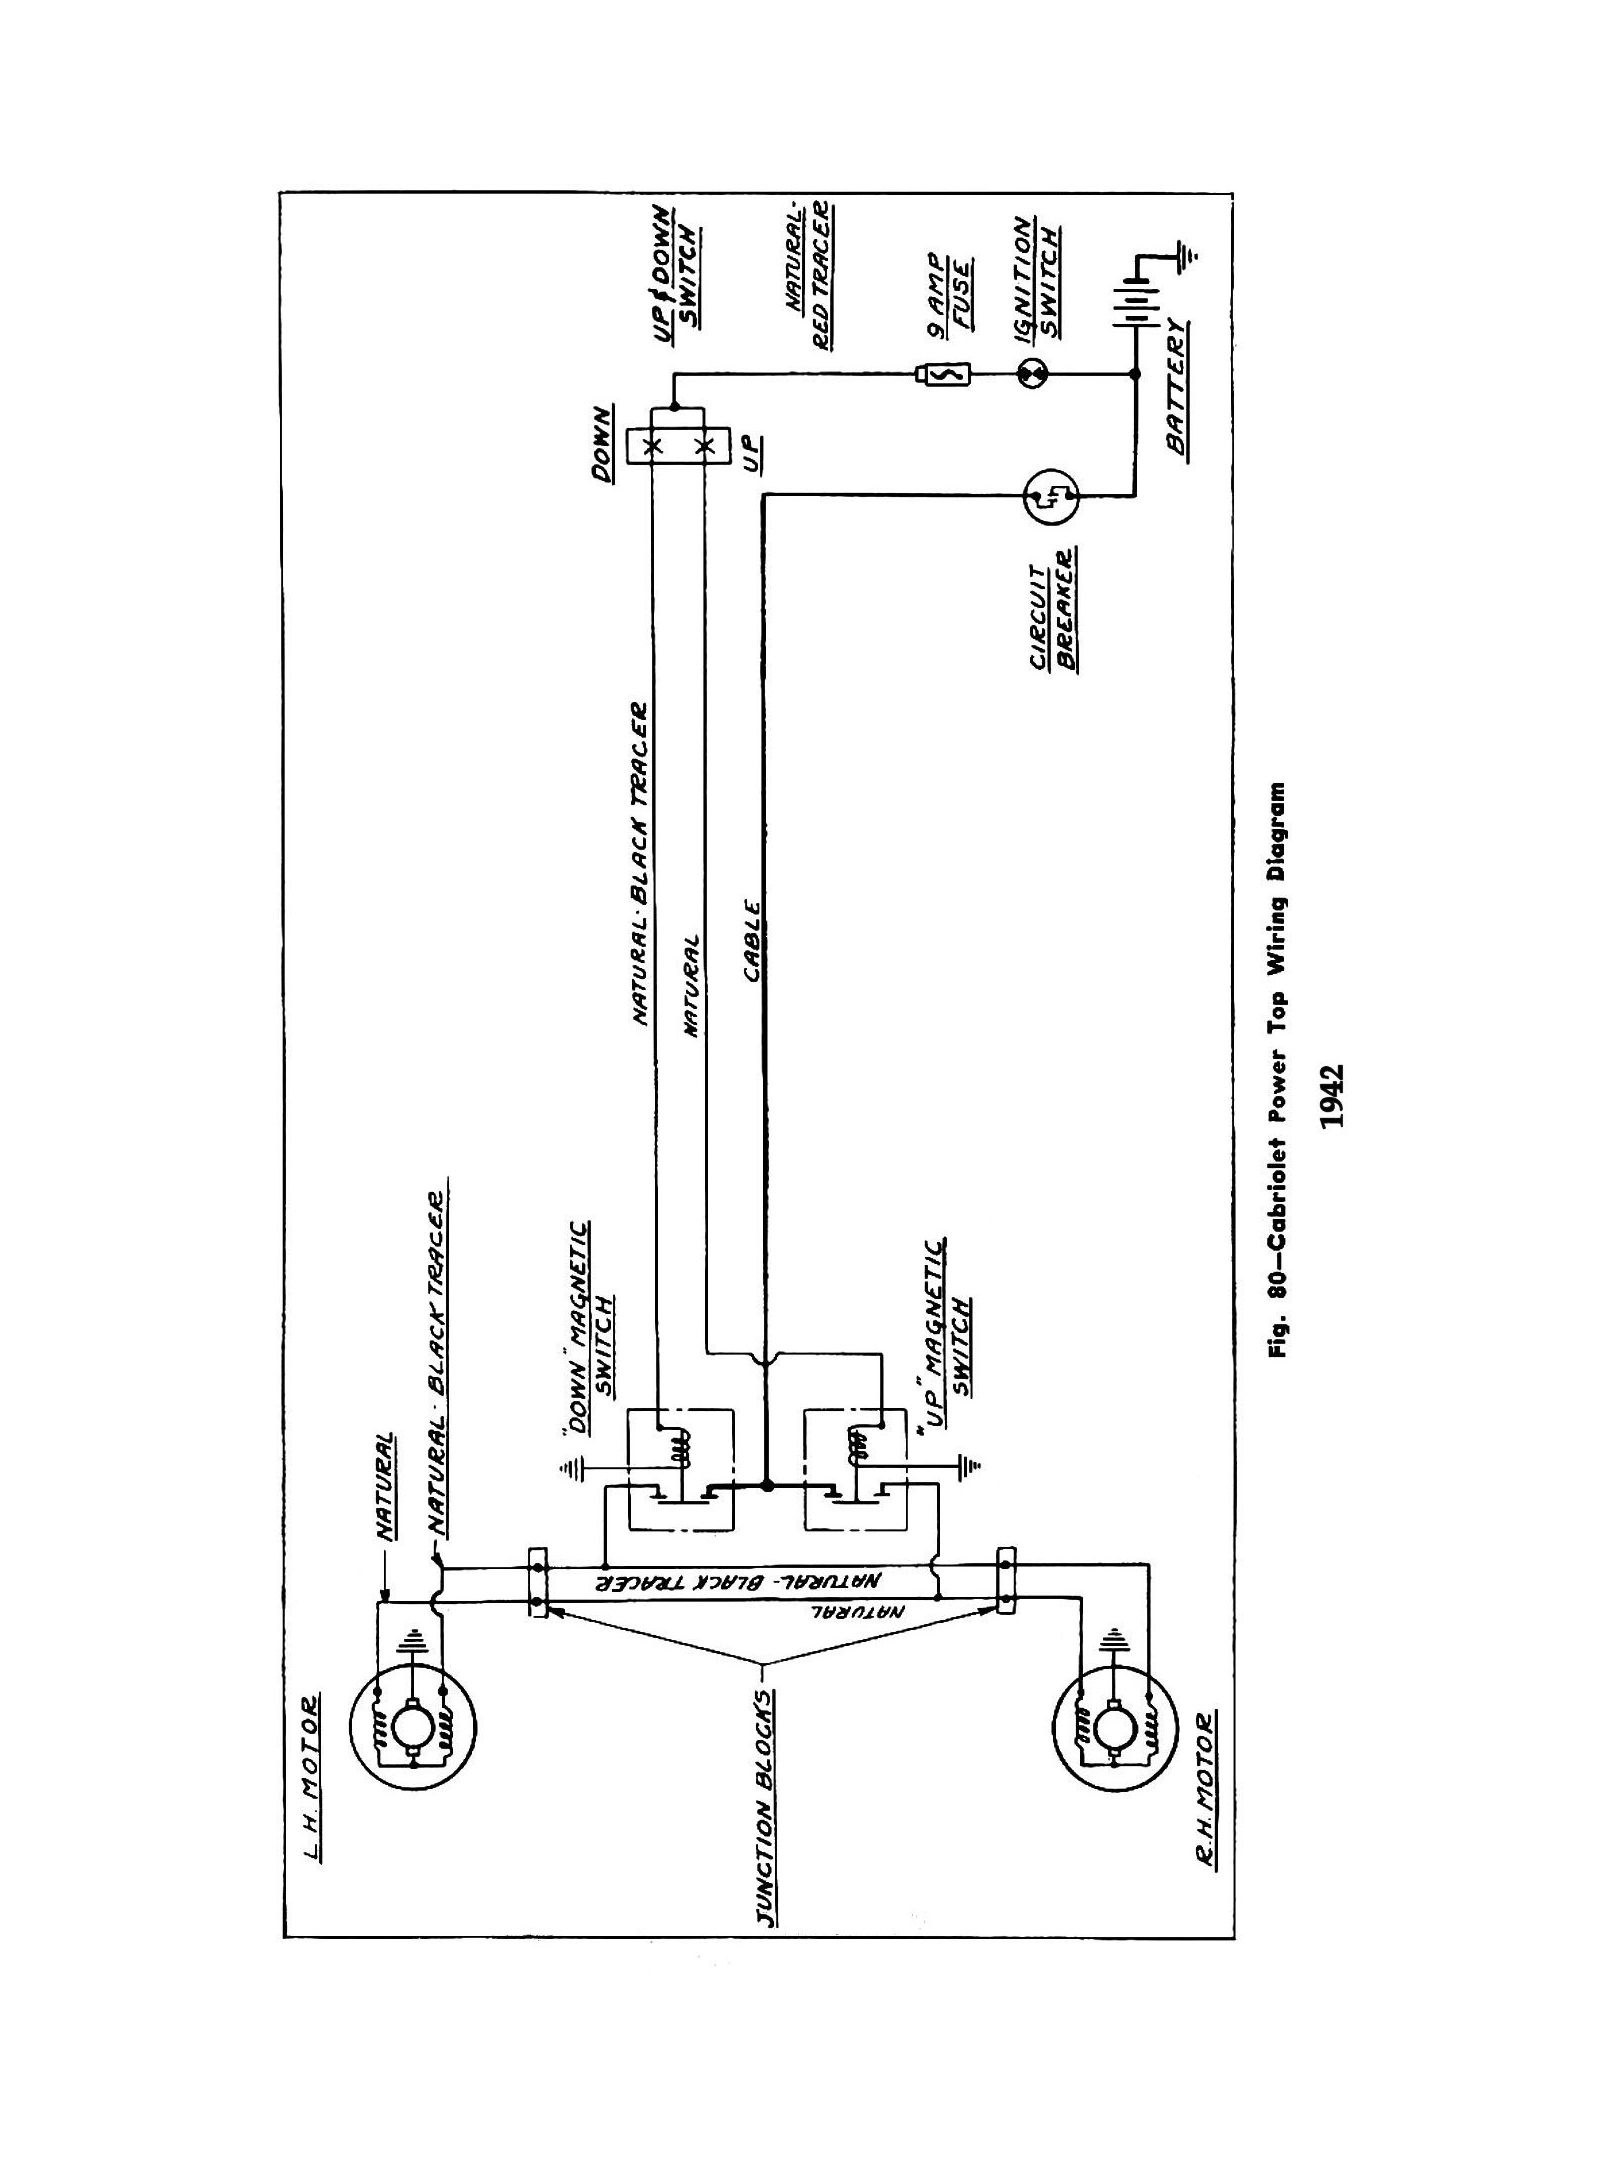 E Stop Normally Closed Schematic